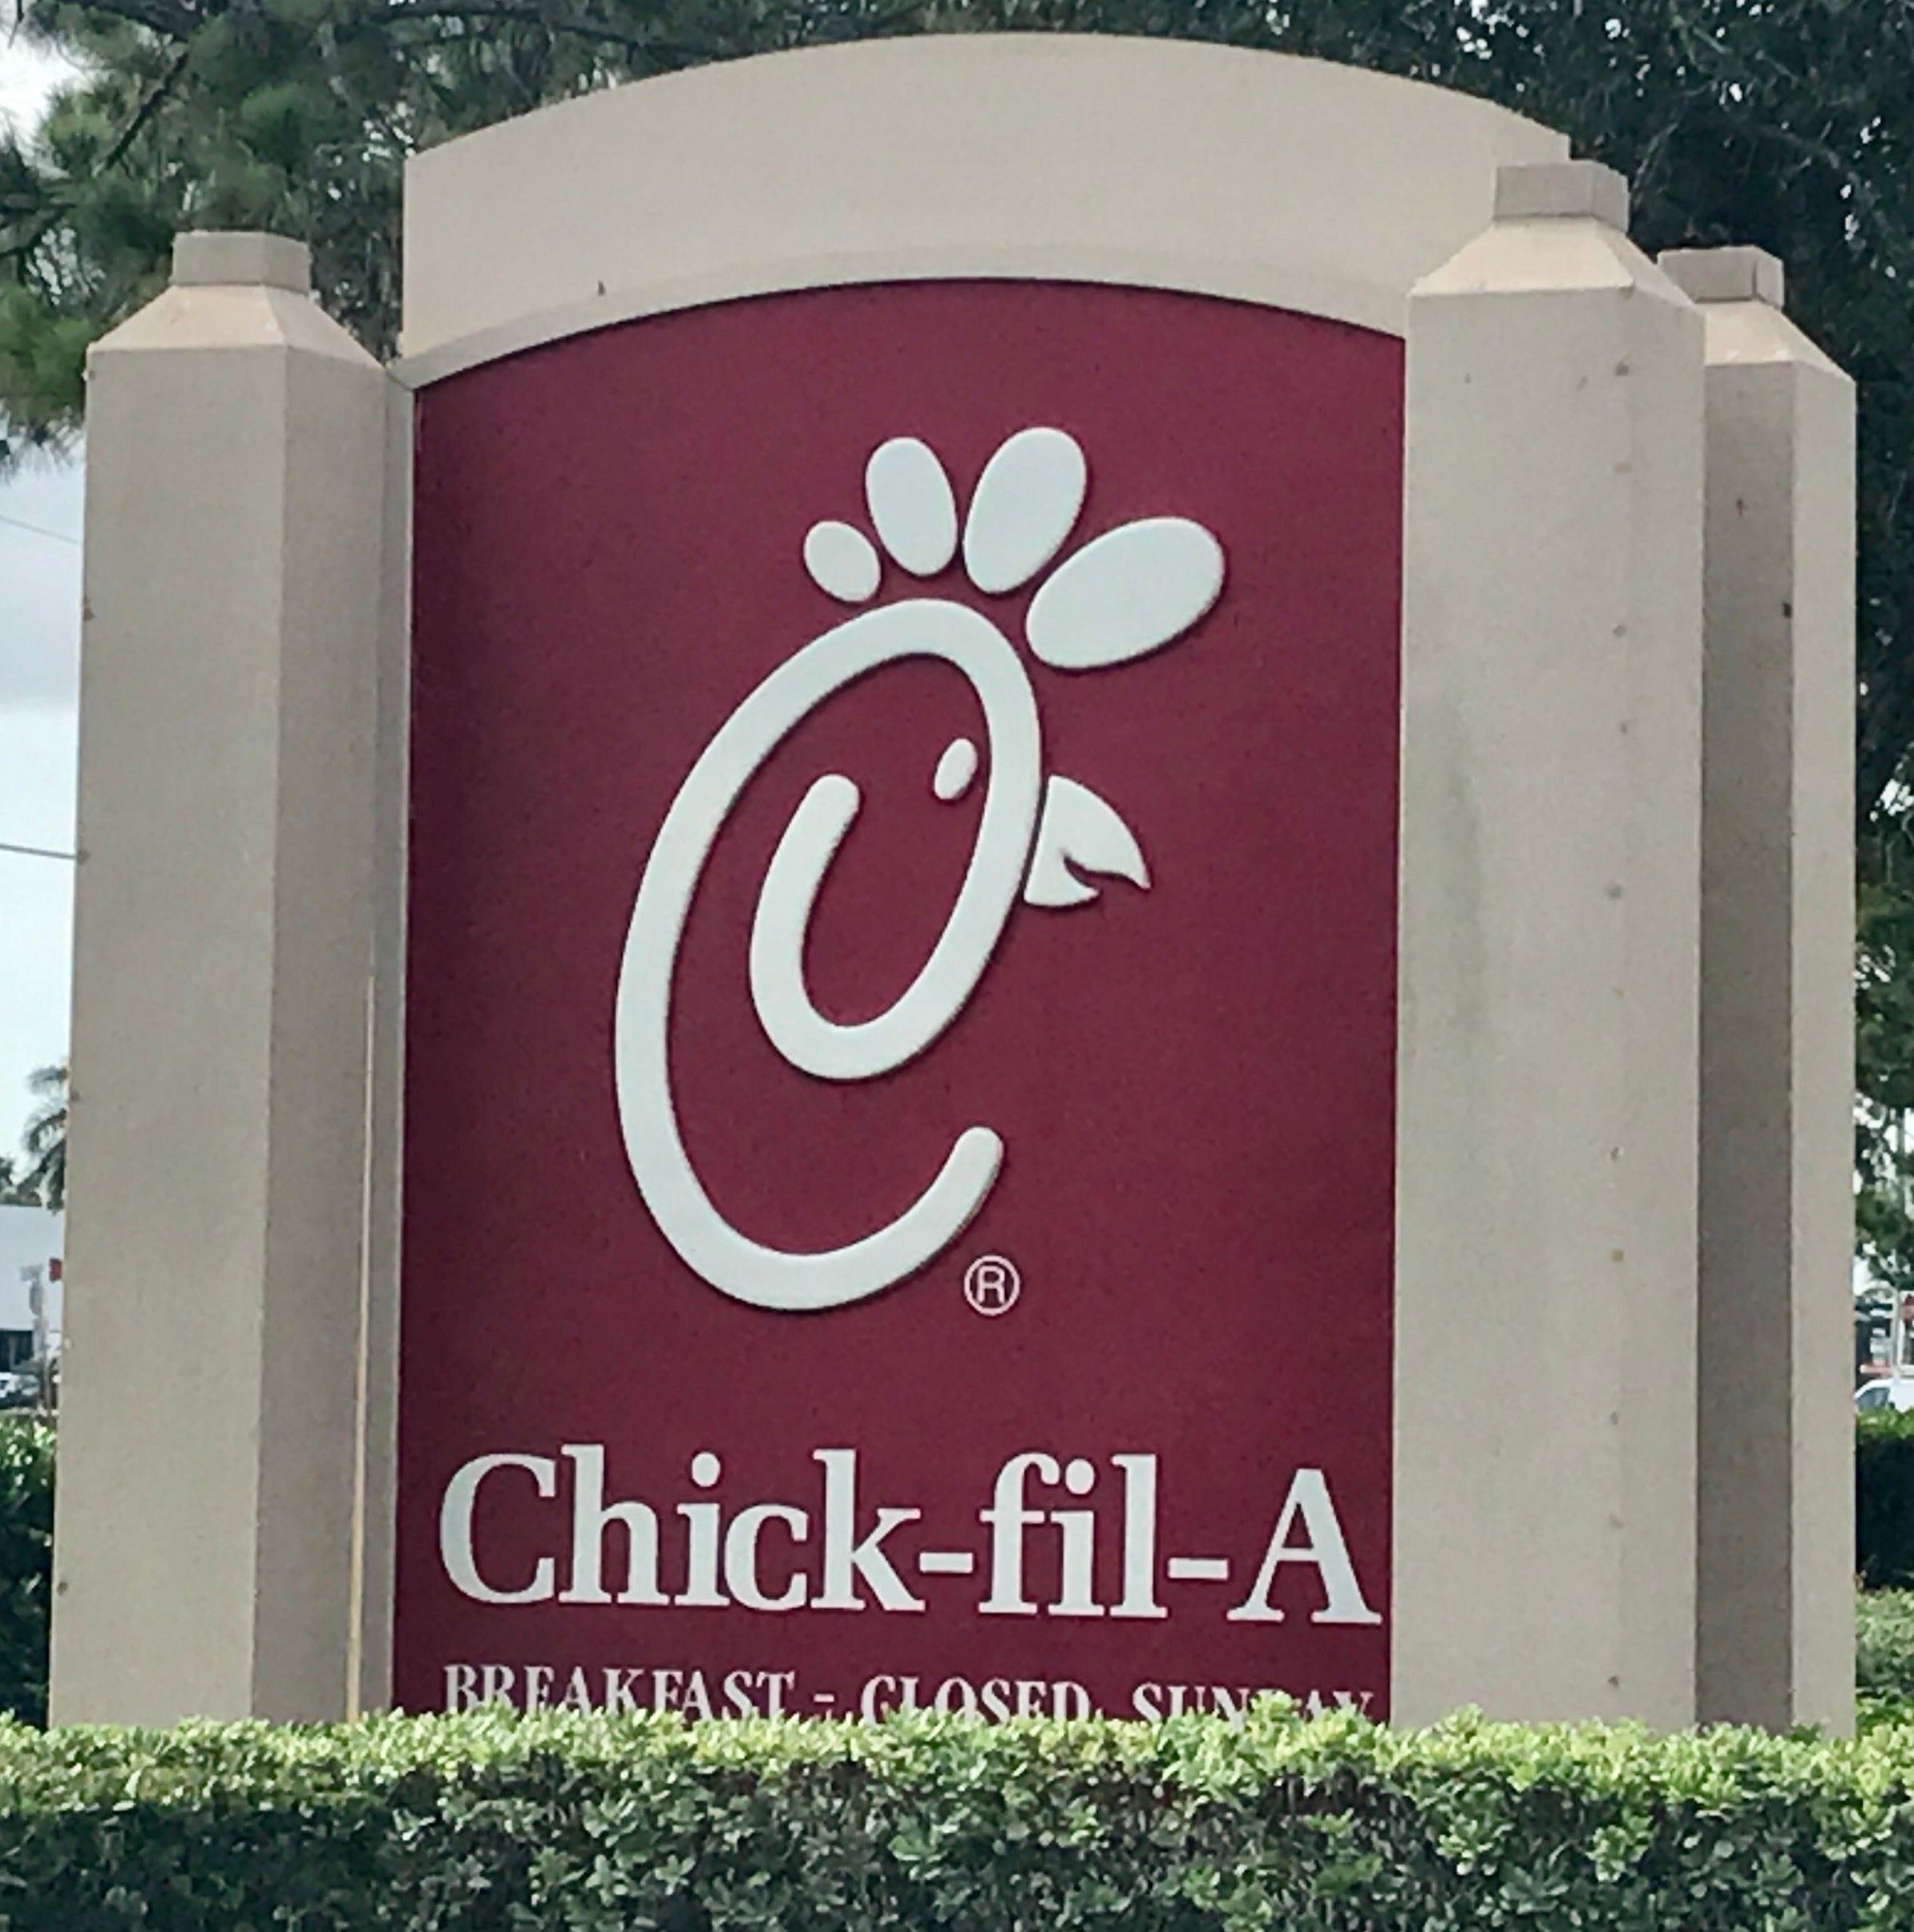 graphic relating to Chick Fil a Printable Application known as A refreshing Chick-fil-A cafe is coming in the direction of Viera